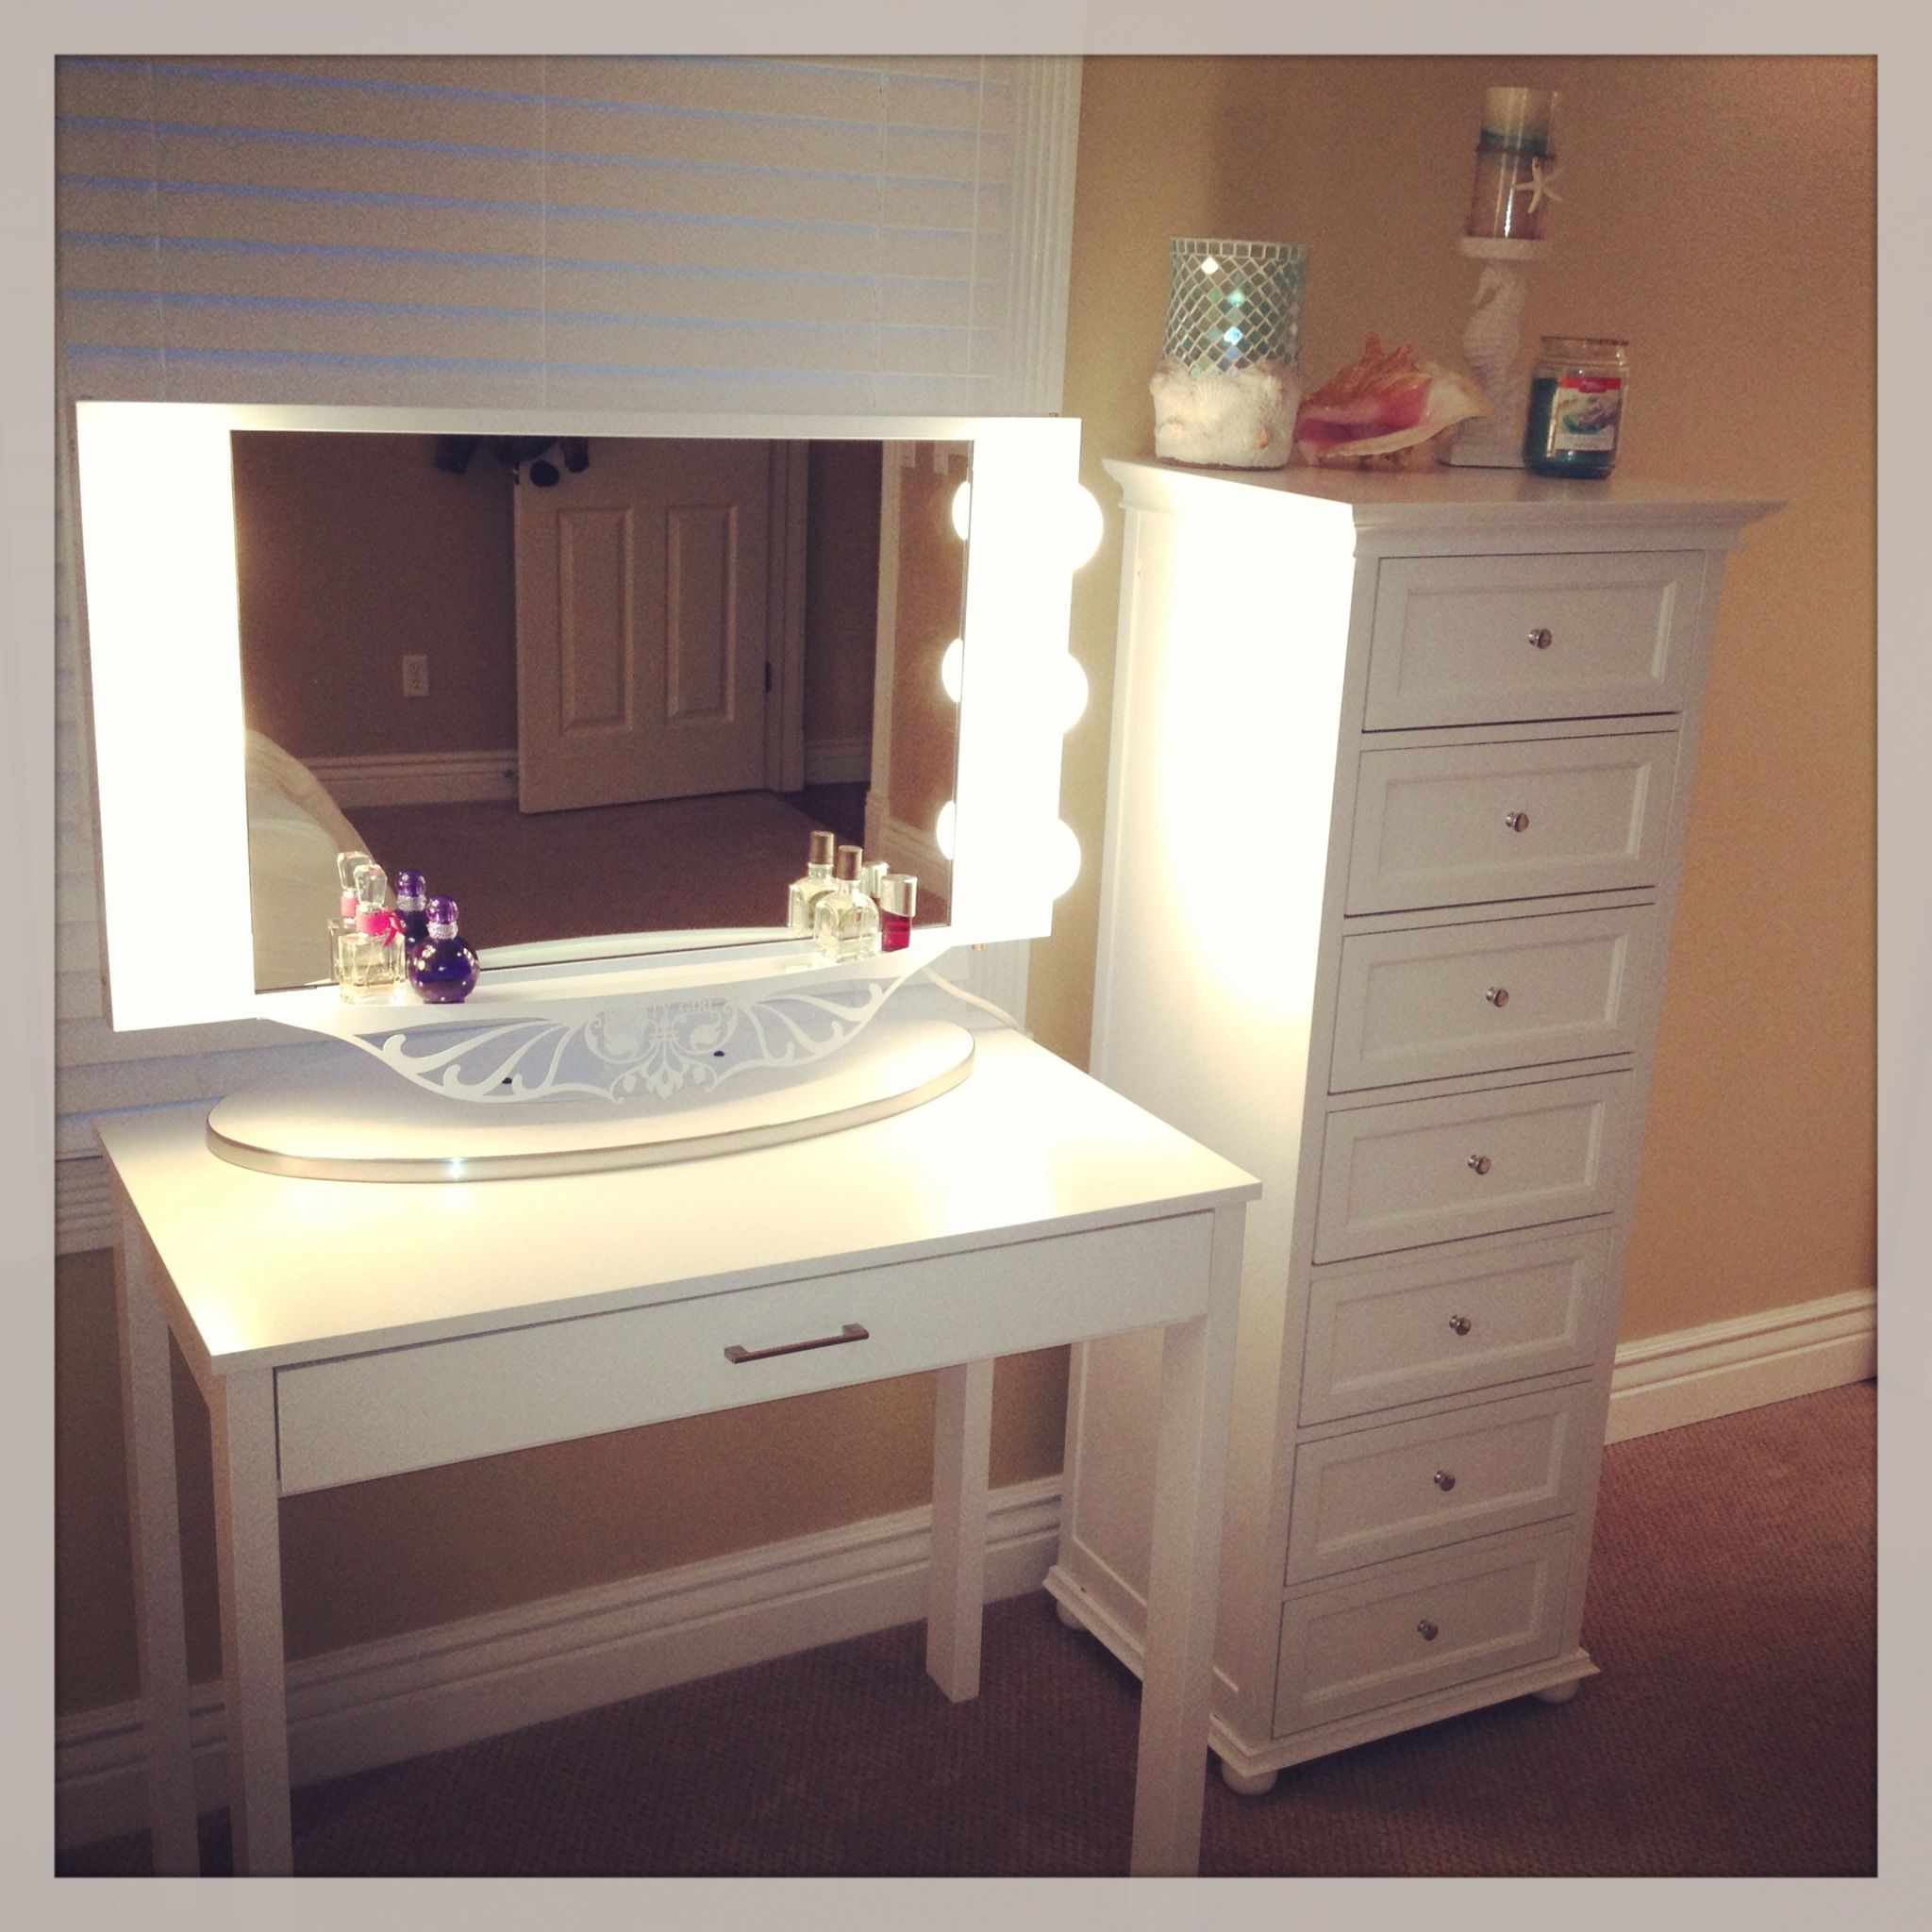 Dressing table designs with full length mirror for girls - Makeup Desk For A Small Area Desk From Target Drawers From Home Decorators Mirror From Vanity Girl Bathroom Mirror Ideas